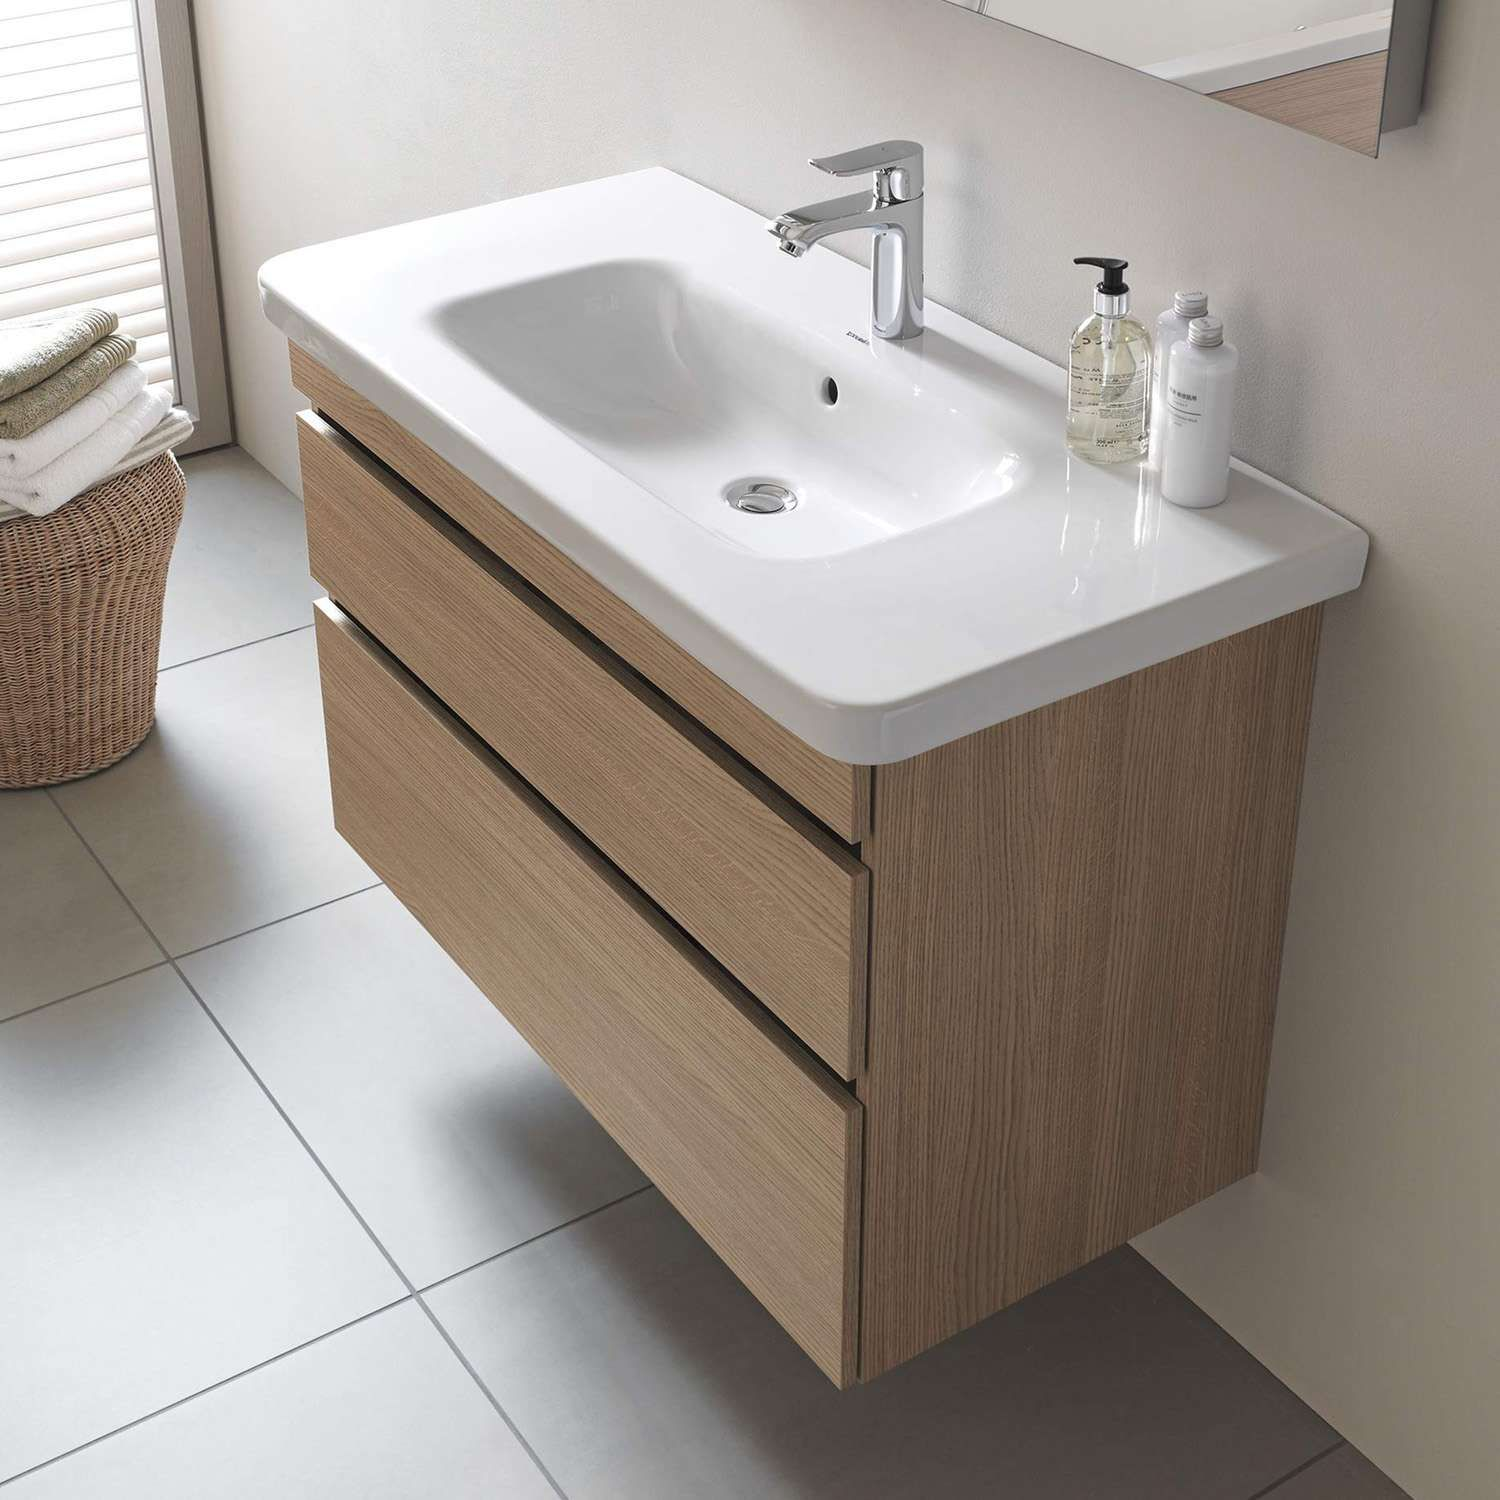 Attirant Pedestal Sink Vs Vanity: Which Is Right For You?